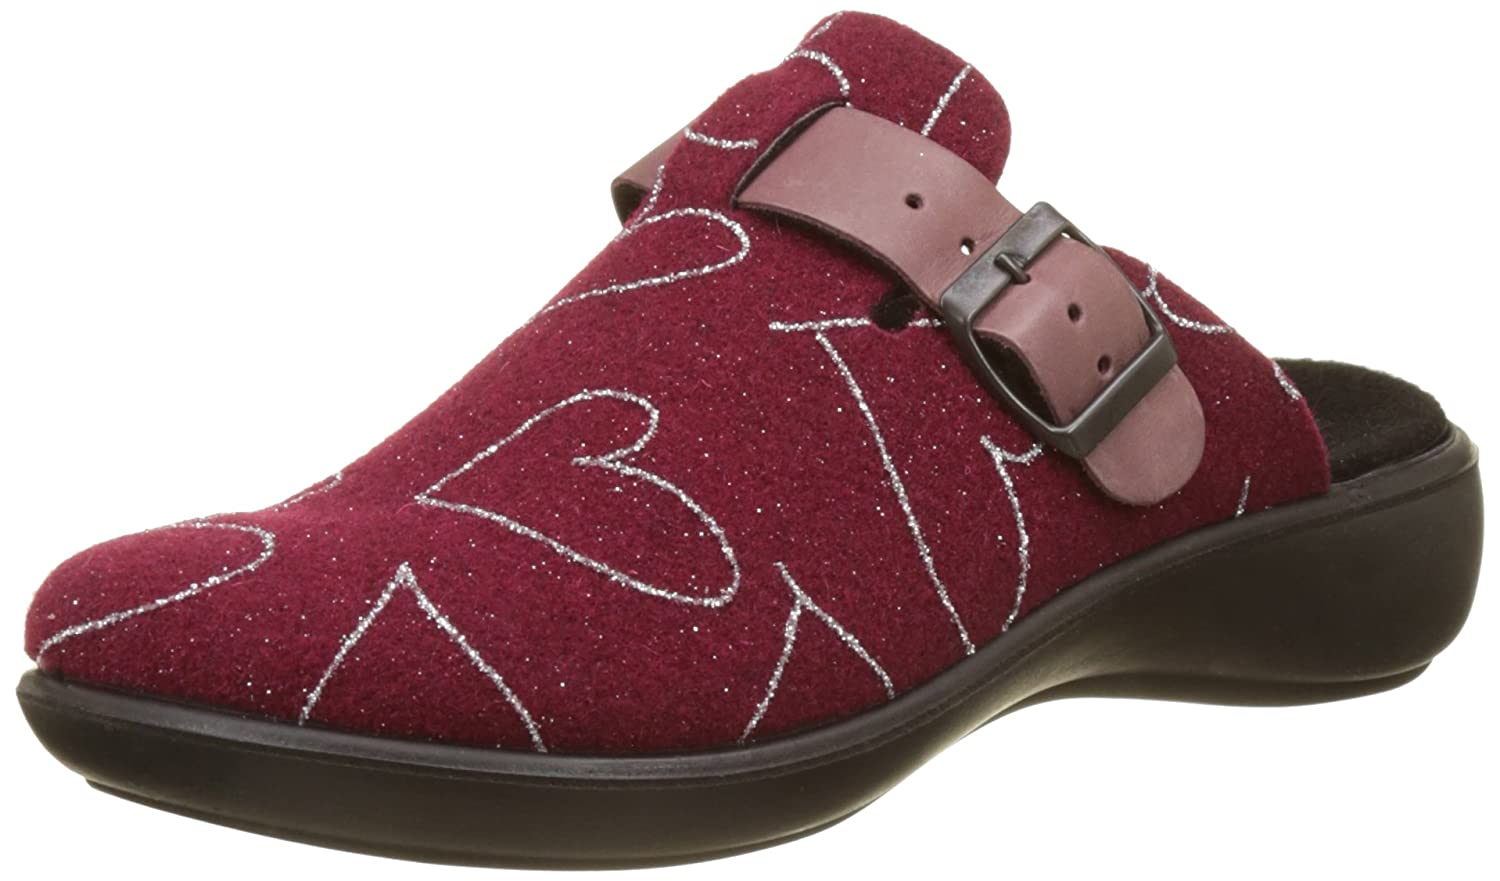 ROMIKA Ibiza Home 19996 322, 322, Chaussons (410)) Mules Femme Rot (Bordo (410)) 08906bd - fast-weightloss-diet.space